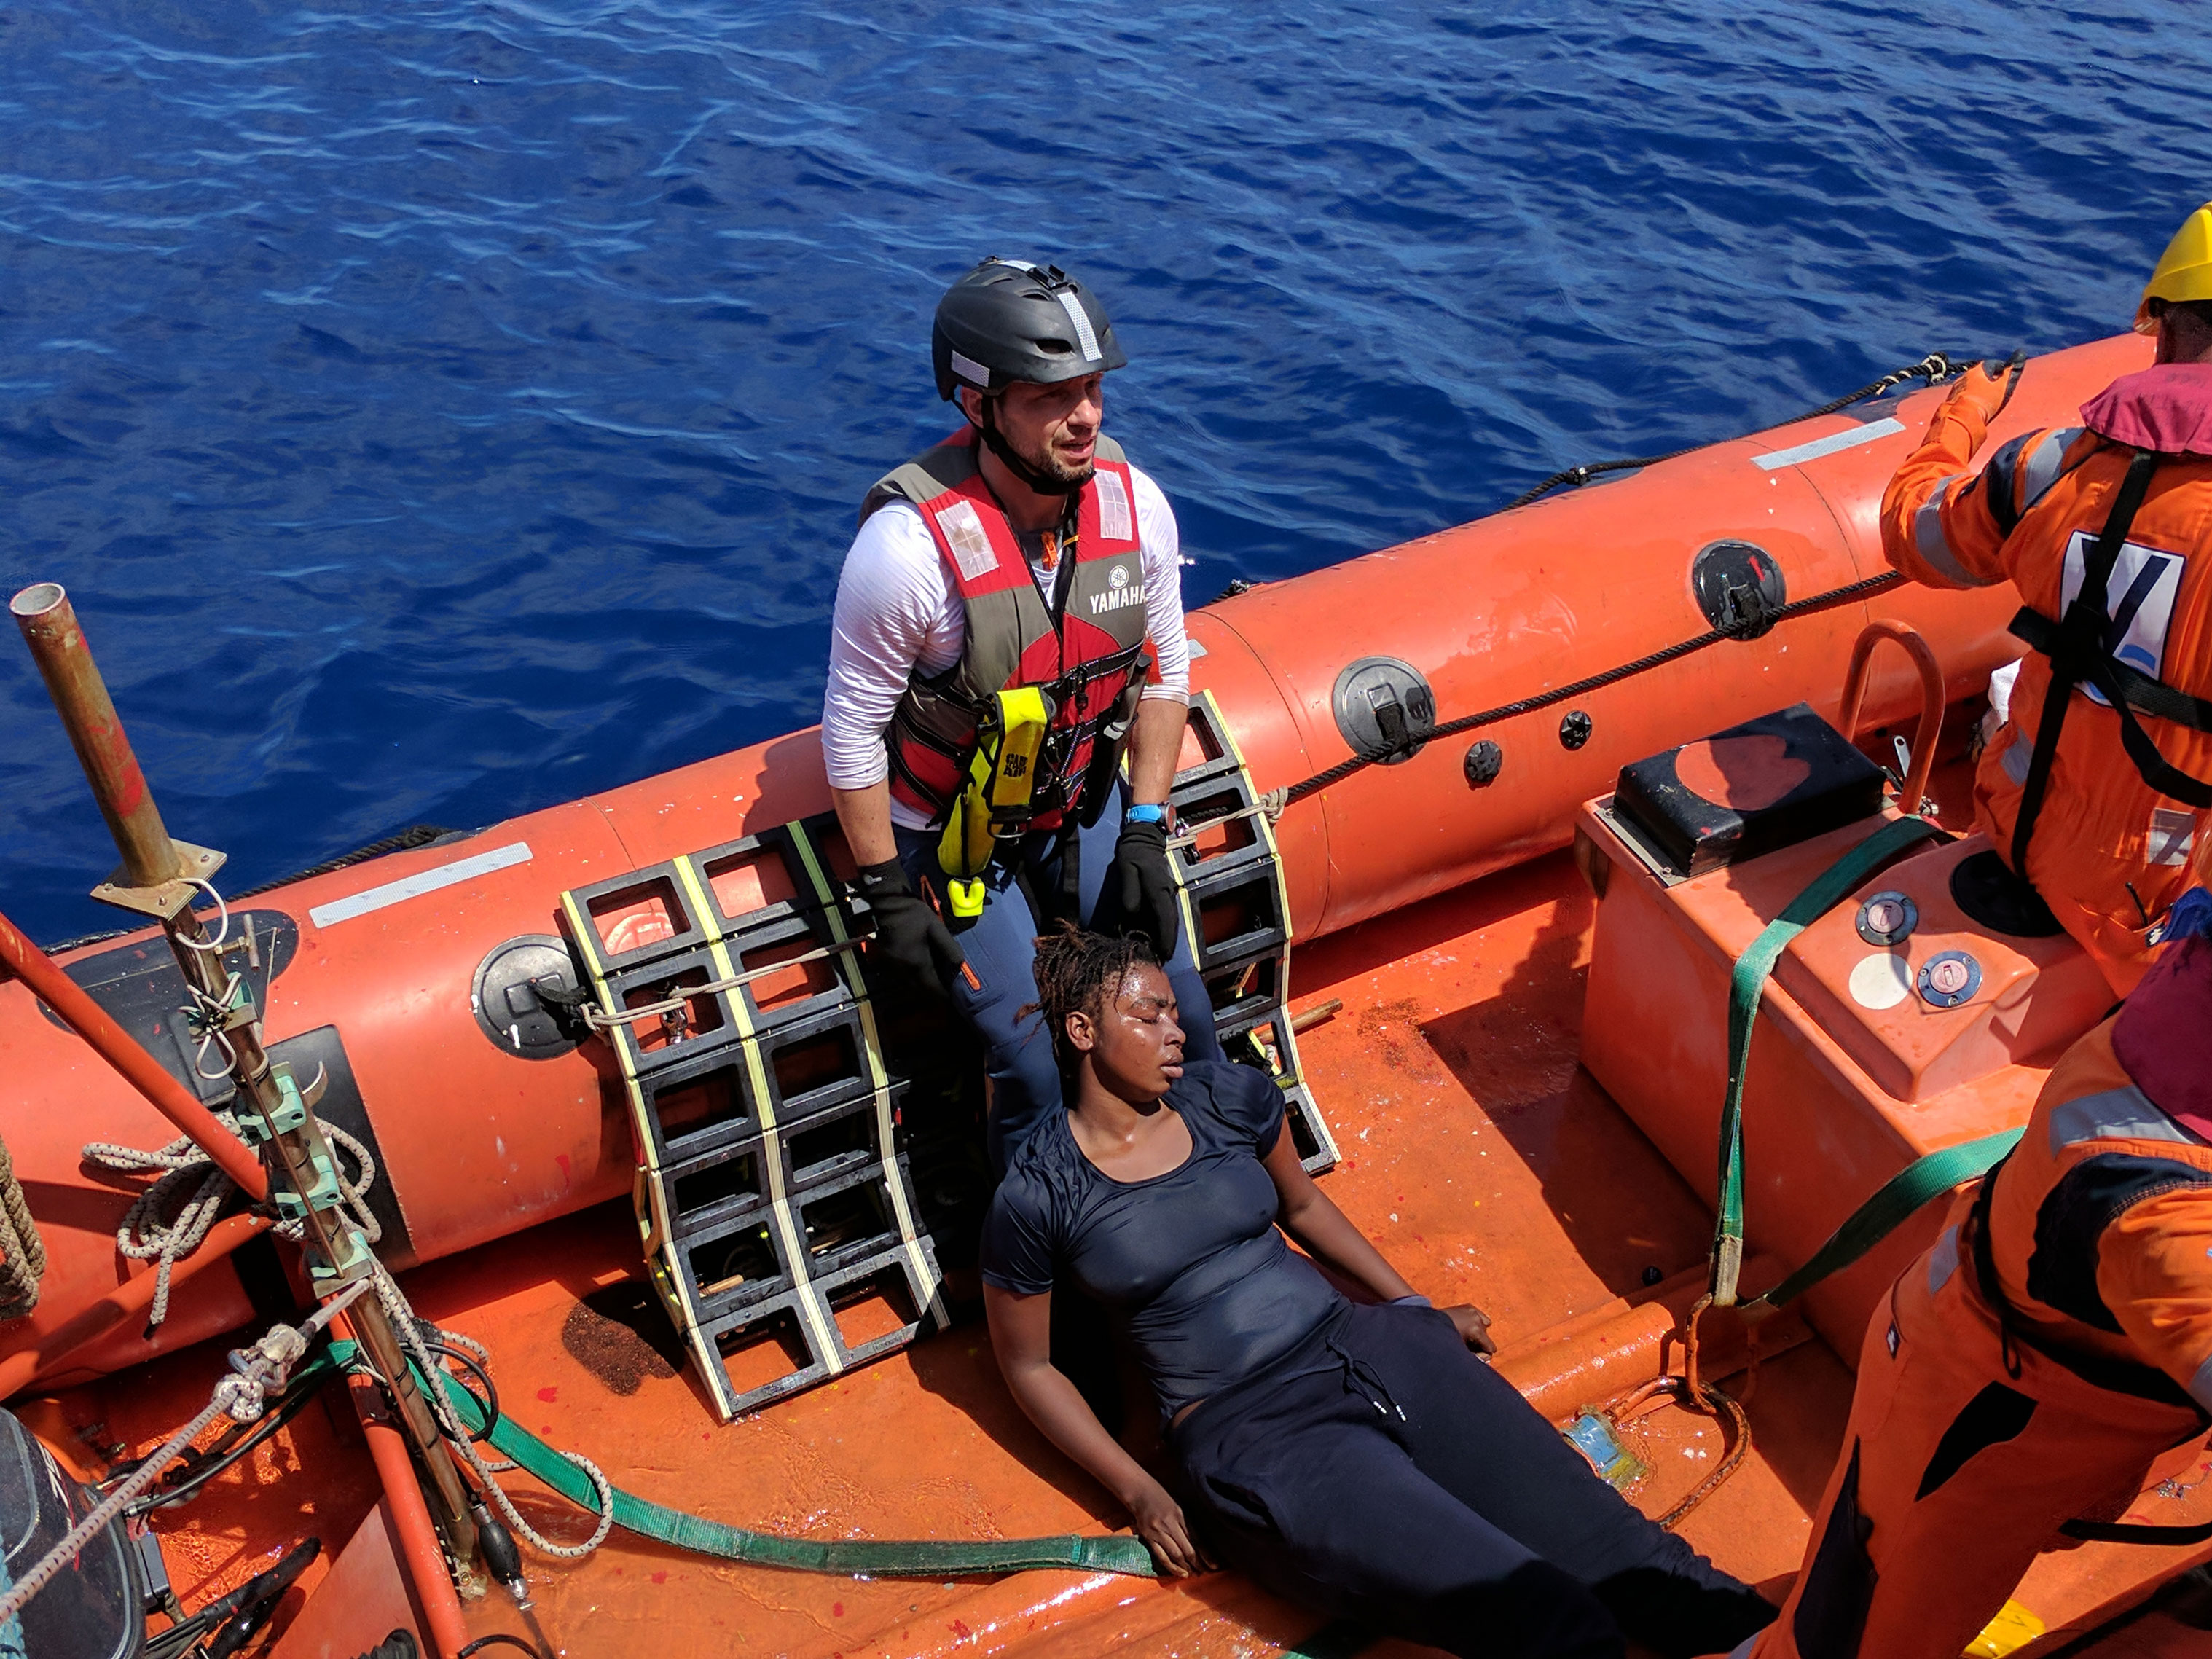 A woman wearing blue clothes, visibly wet from the ocean, slumps against the legs of one of the crewmembers after being pulled into the rescue dinghy.